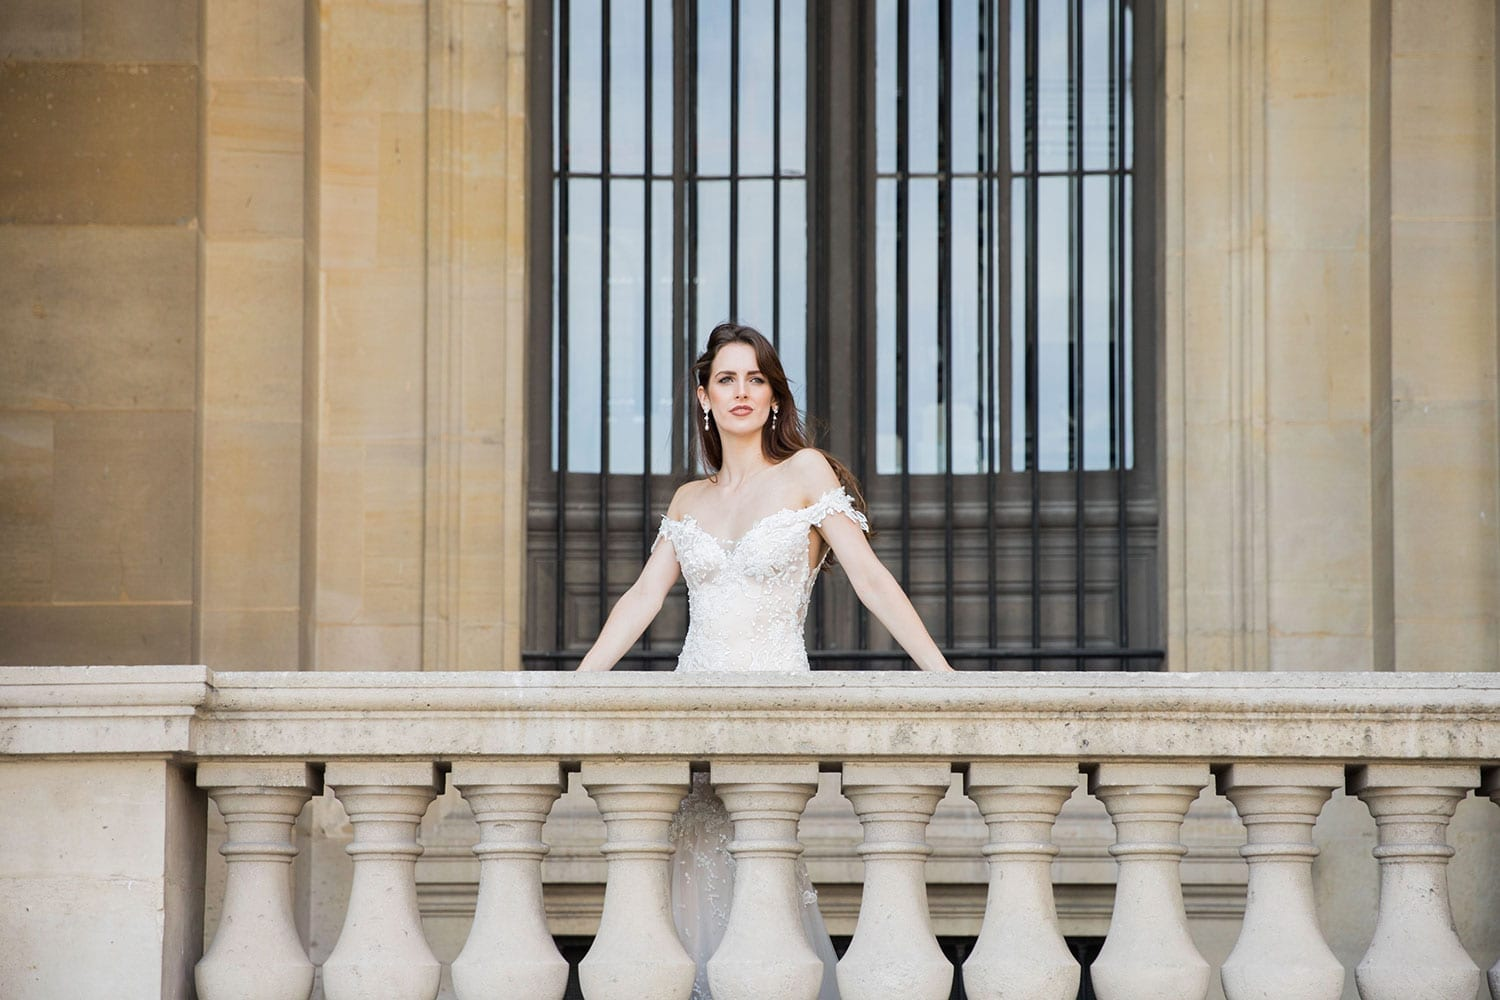 Model wearing Vinka Design Sashia Wedding Dress, an off-shoulder silk wedding dress with sheer lace back detail. This stunning gown features a fitted long line bodice and lace and soft tulle skirt. Worn on balcony in Paris.